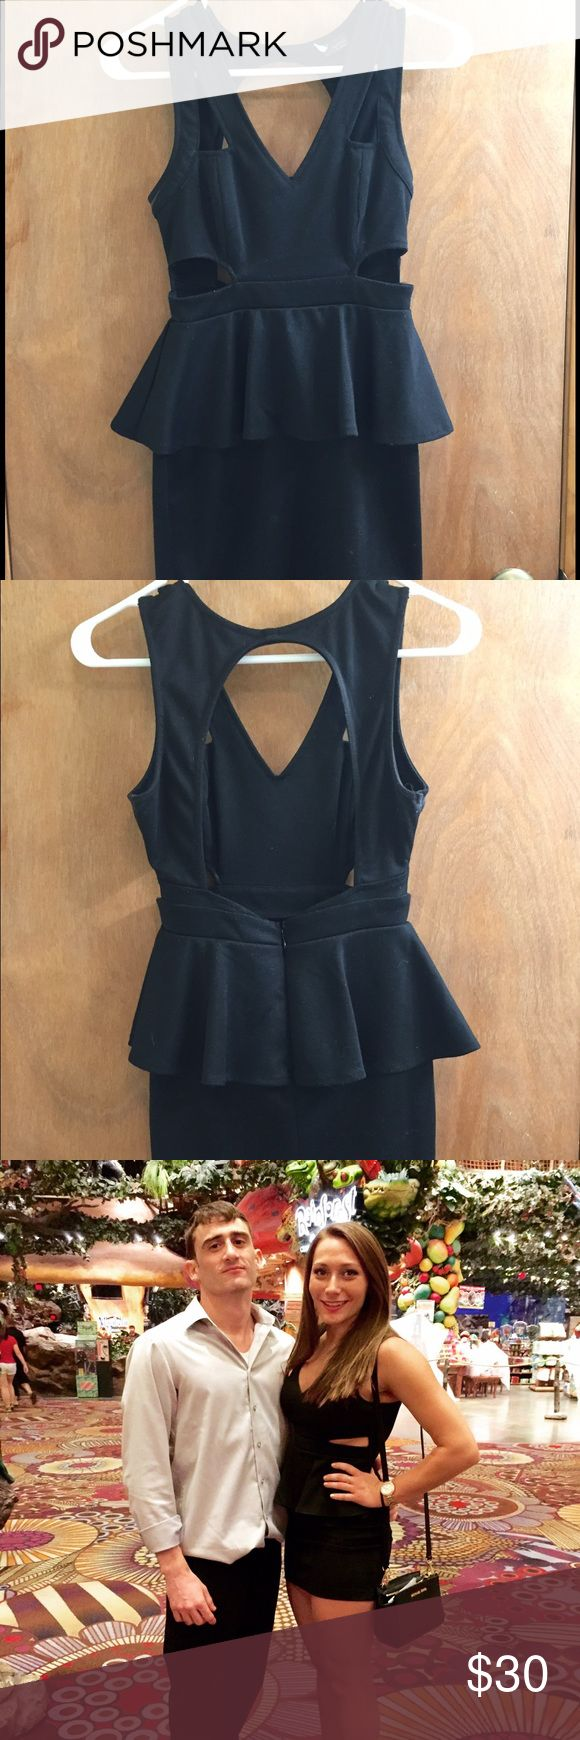 Urban outfitters black peplum dress with open back Gently worn short black peplum dress with cutouts and an open back Urban Outfitters Dresses Mini